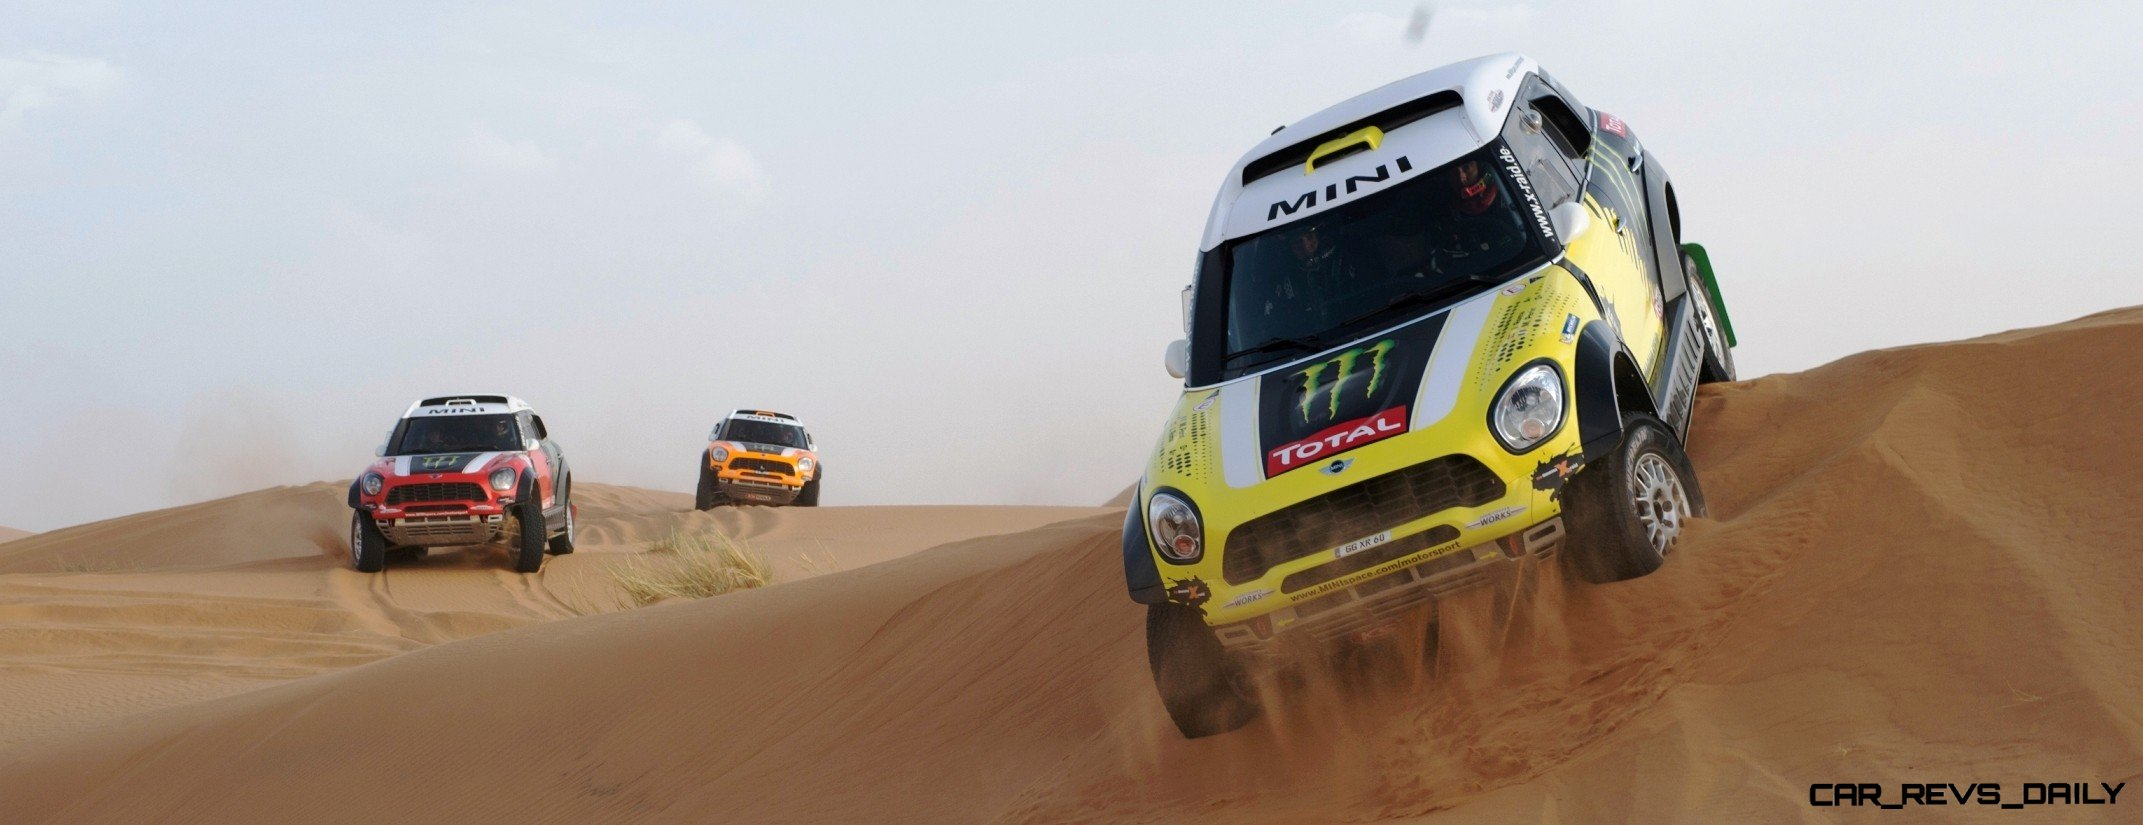 MINI Poised for Dakar Three-Peat with All4 Countryman Squad 48